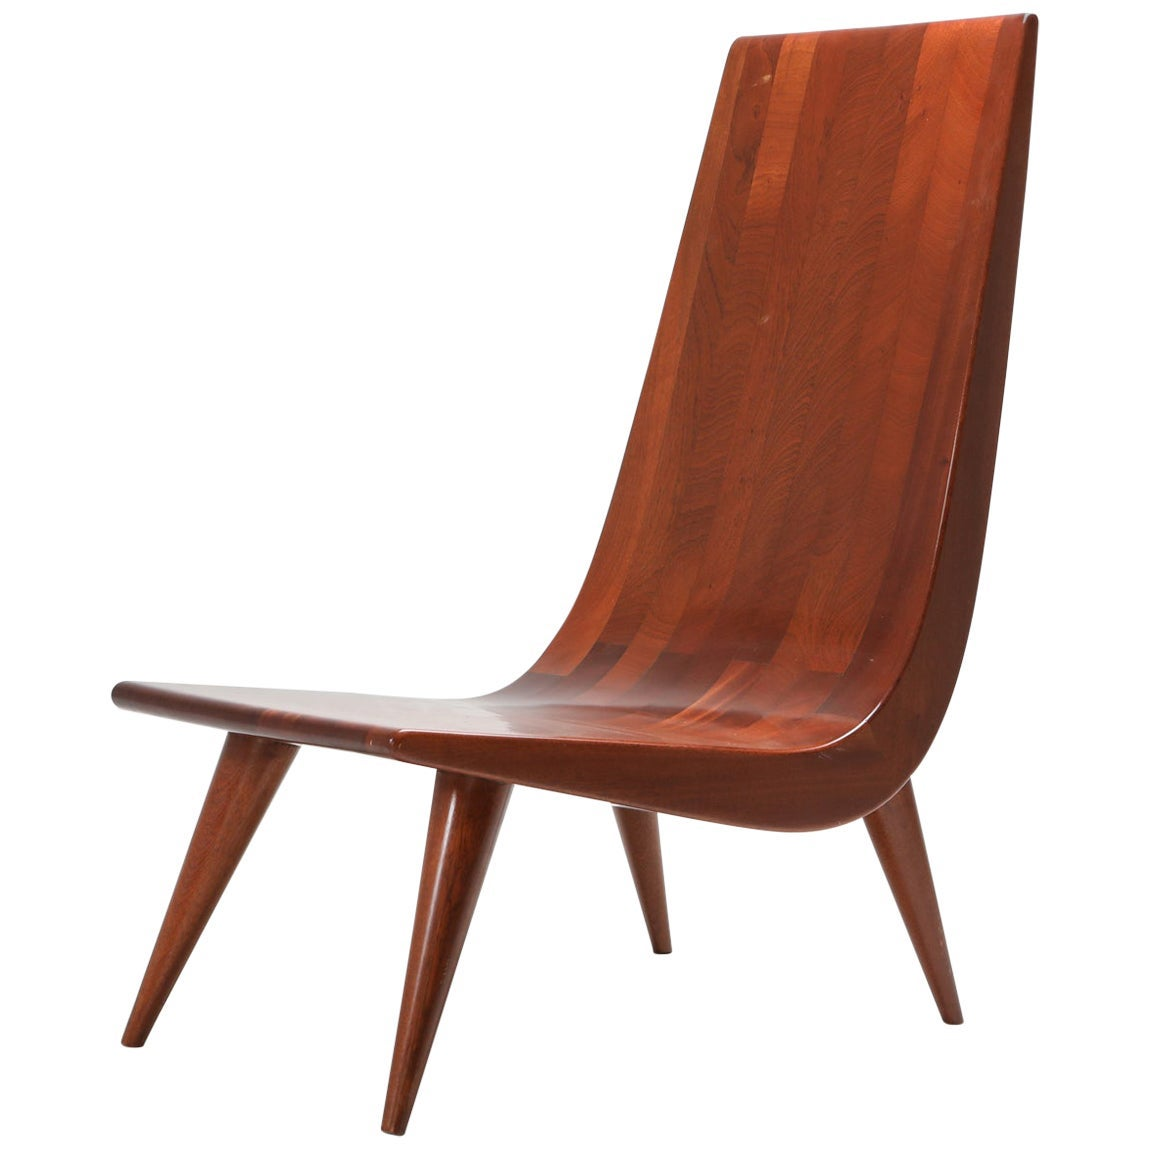 Brazilian Modern Lounge Chair, 1970s